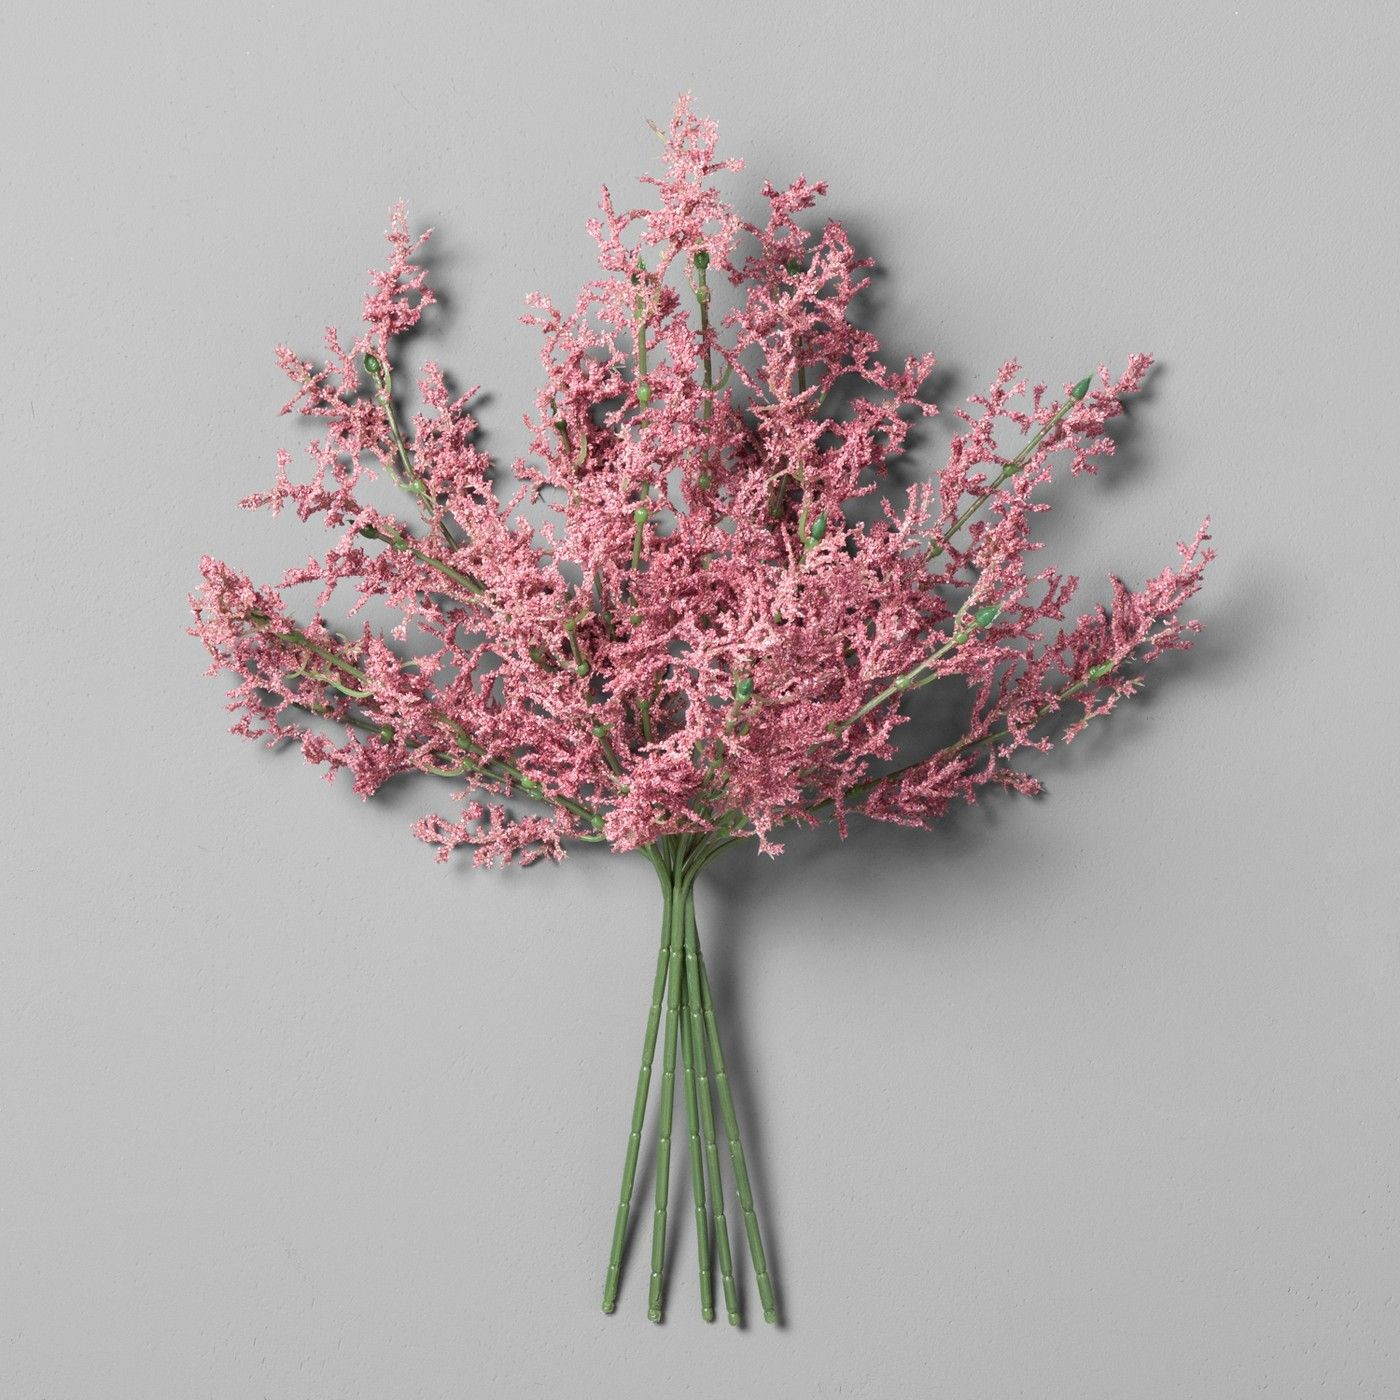 I Love Astilbes This Bundle Of Astilbes From Hearth And Hand Would Be Perfect For Summer Fall Arrangements A Astilbe Flower Fake Flowers Artificial Plants